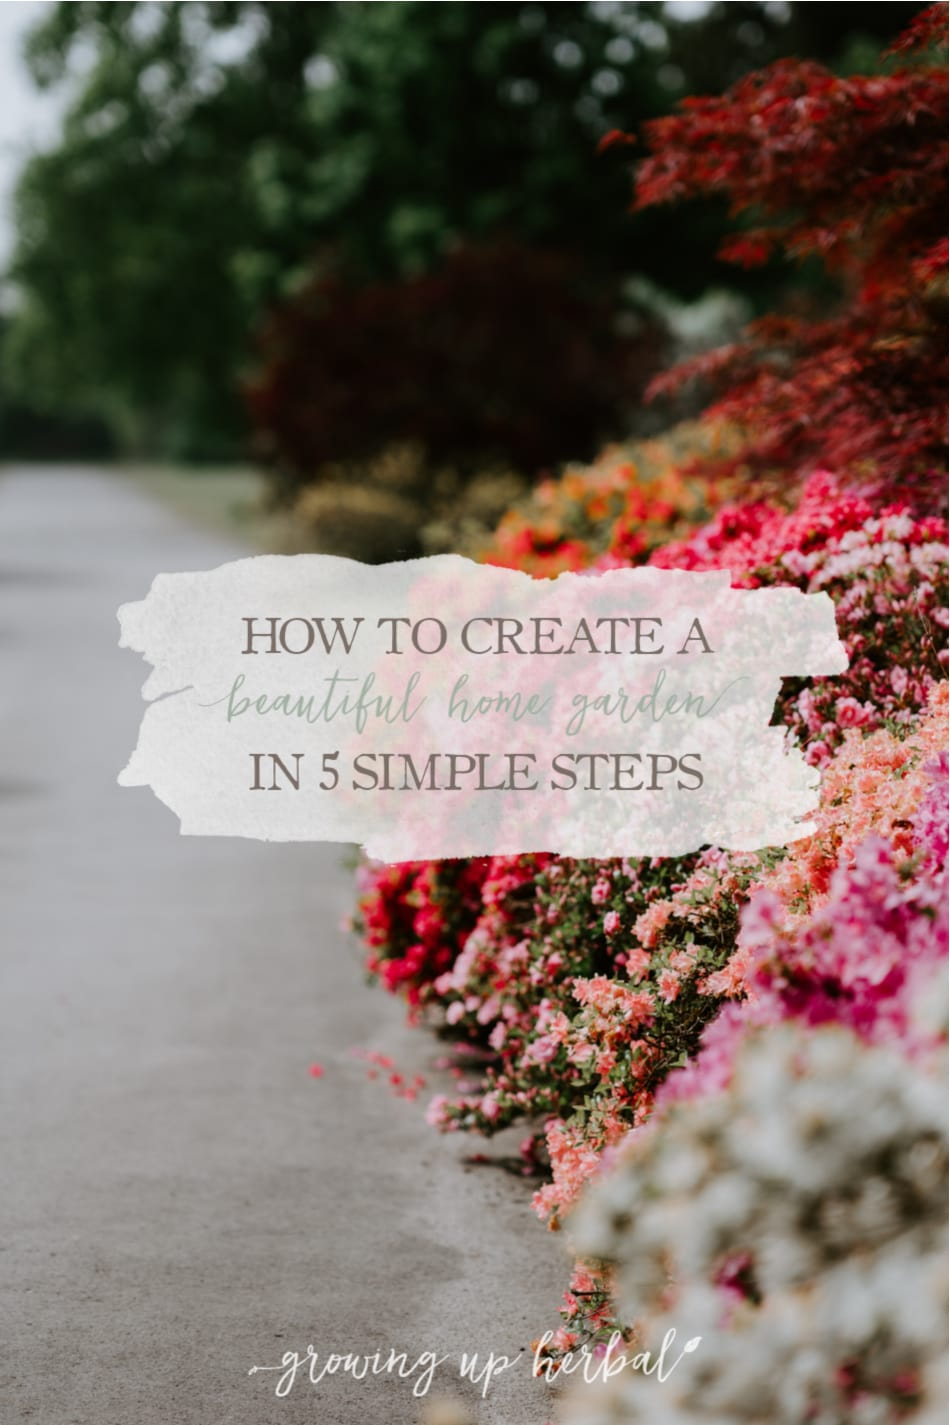 How To Create A Beautiful Home Garden In 5 Simple Steps 1